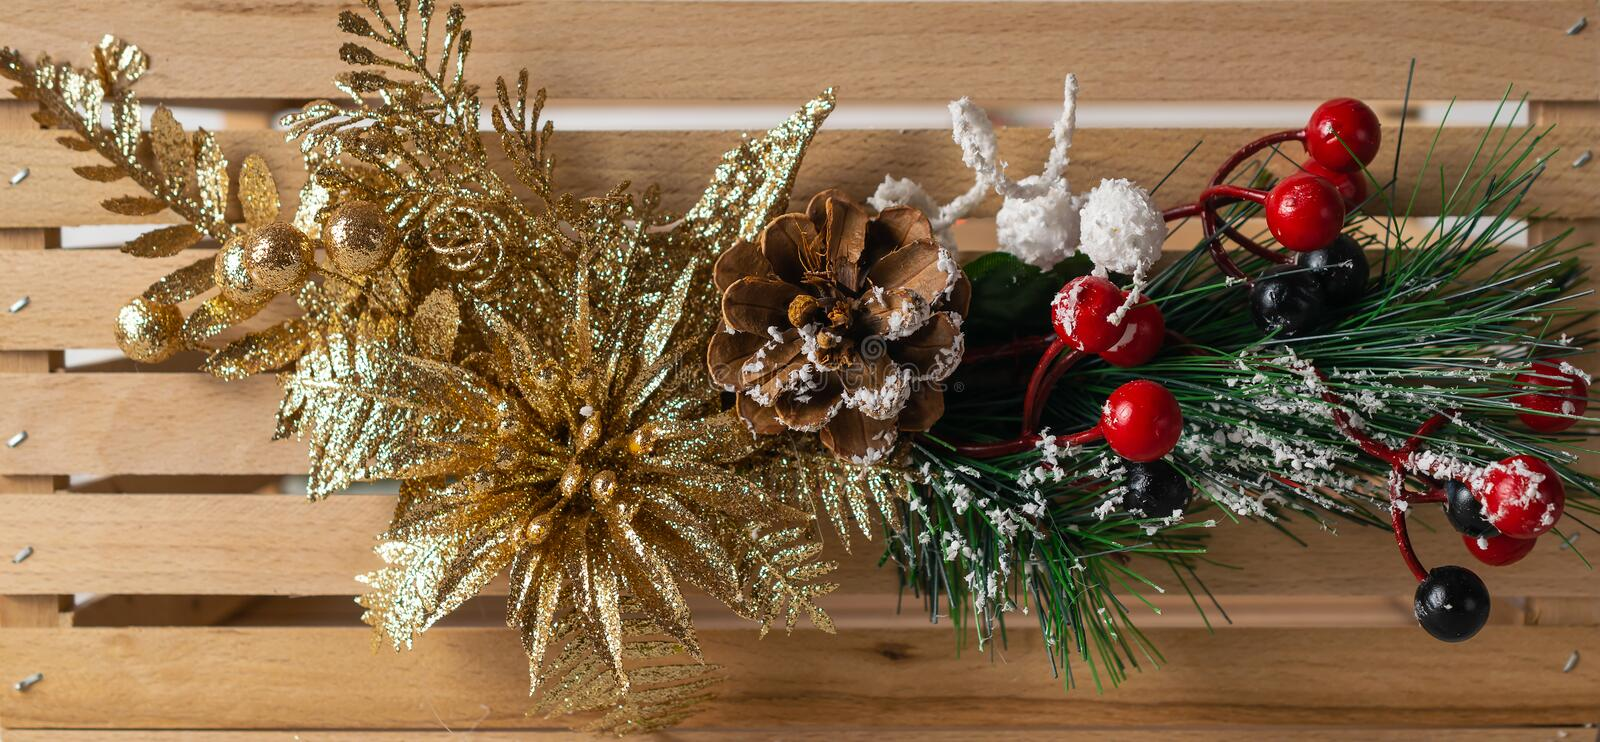 Chrismas sparkling decorative banner on wooden background with fir tree branches and golden flower stock image